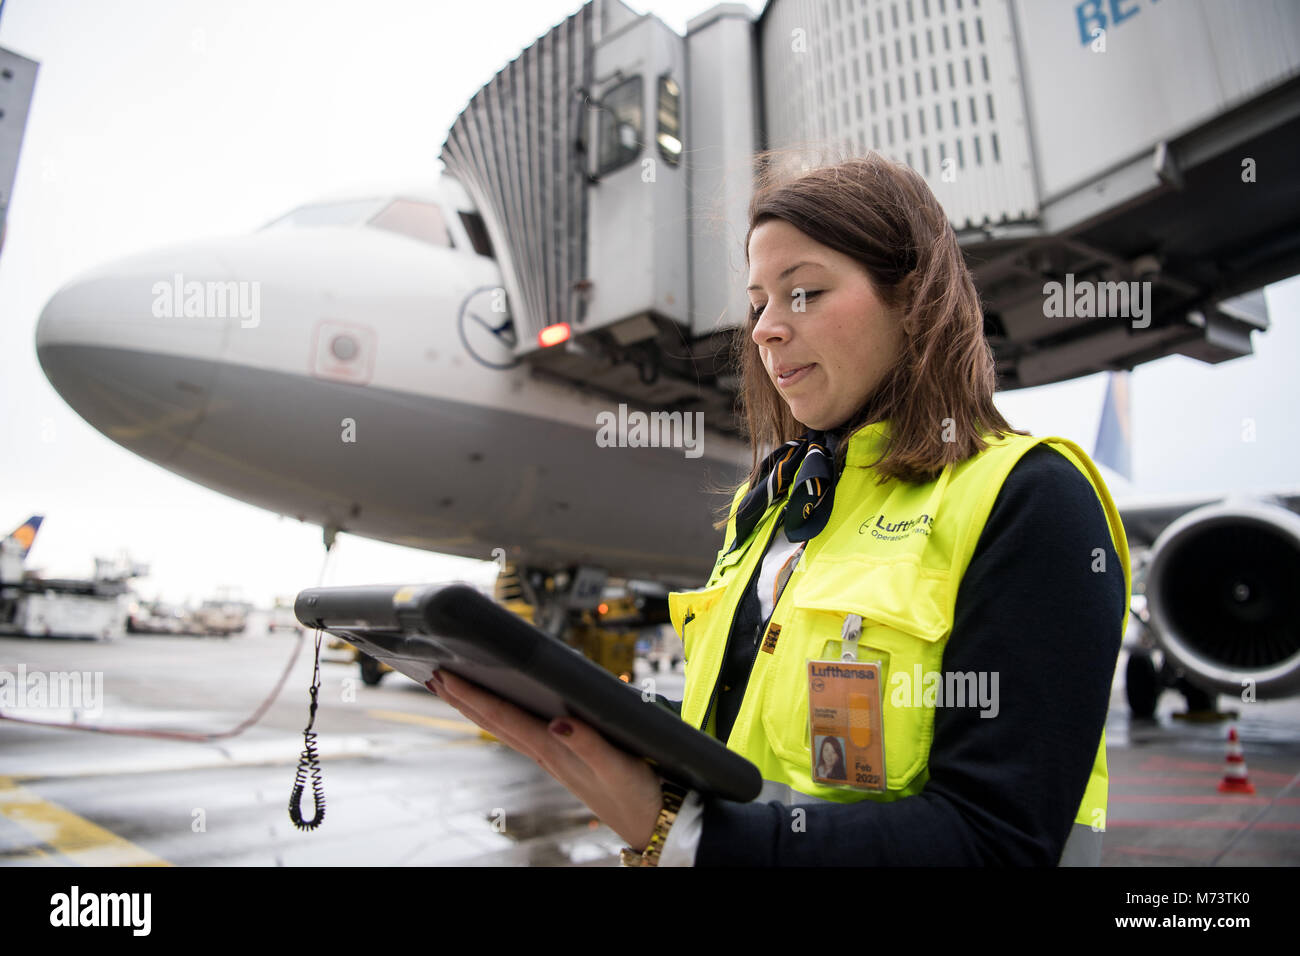 08 March 2018, Germany, Frankfurt: Christiana Schultheis, ramp manager, monitoring the loading of the Lufthansa - Stock Image